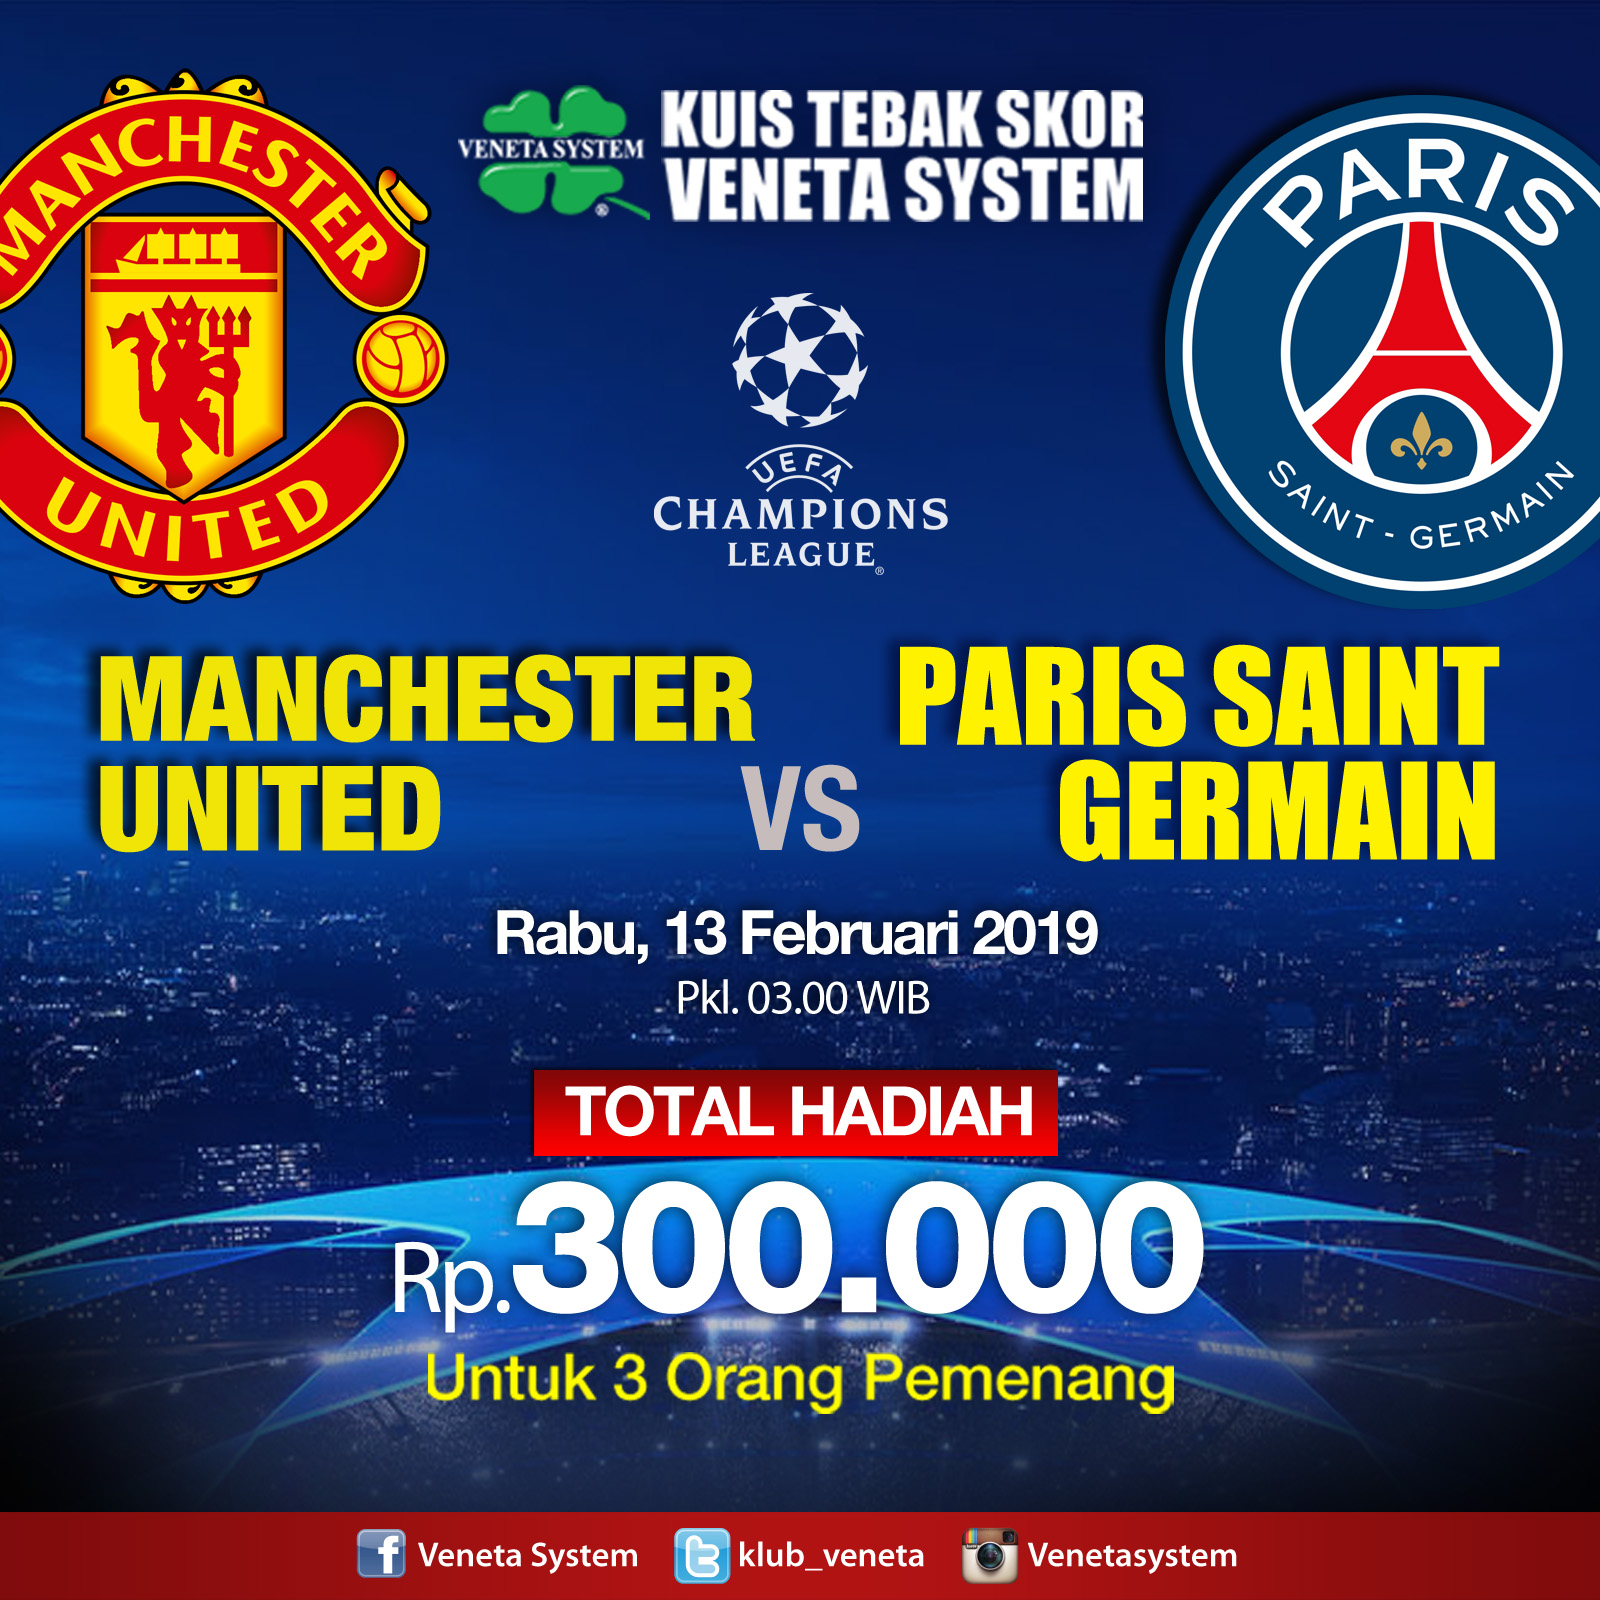 MU VS PSG Cham Leg 13 feb